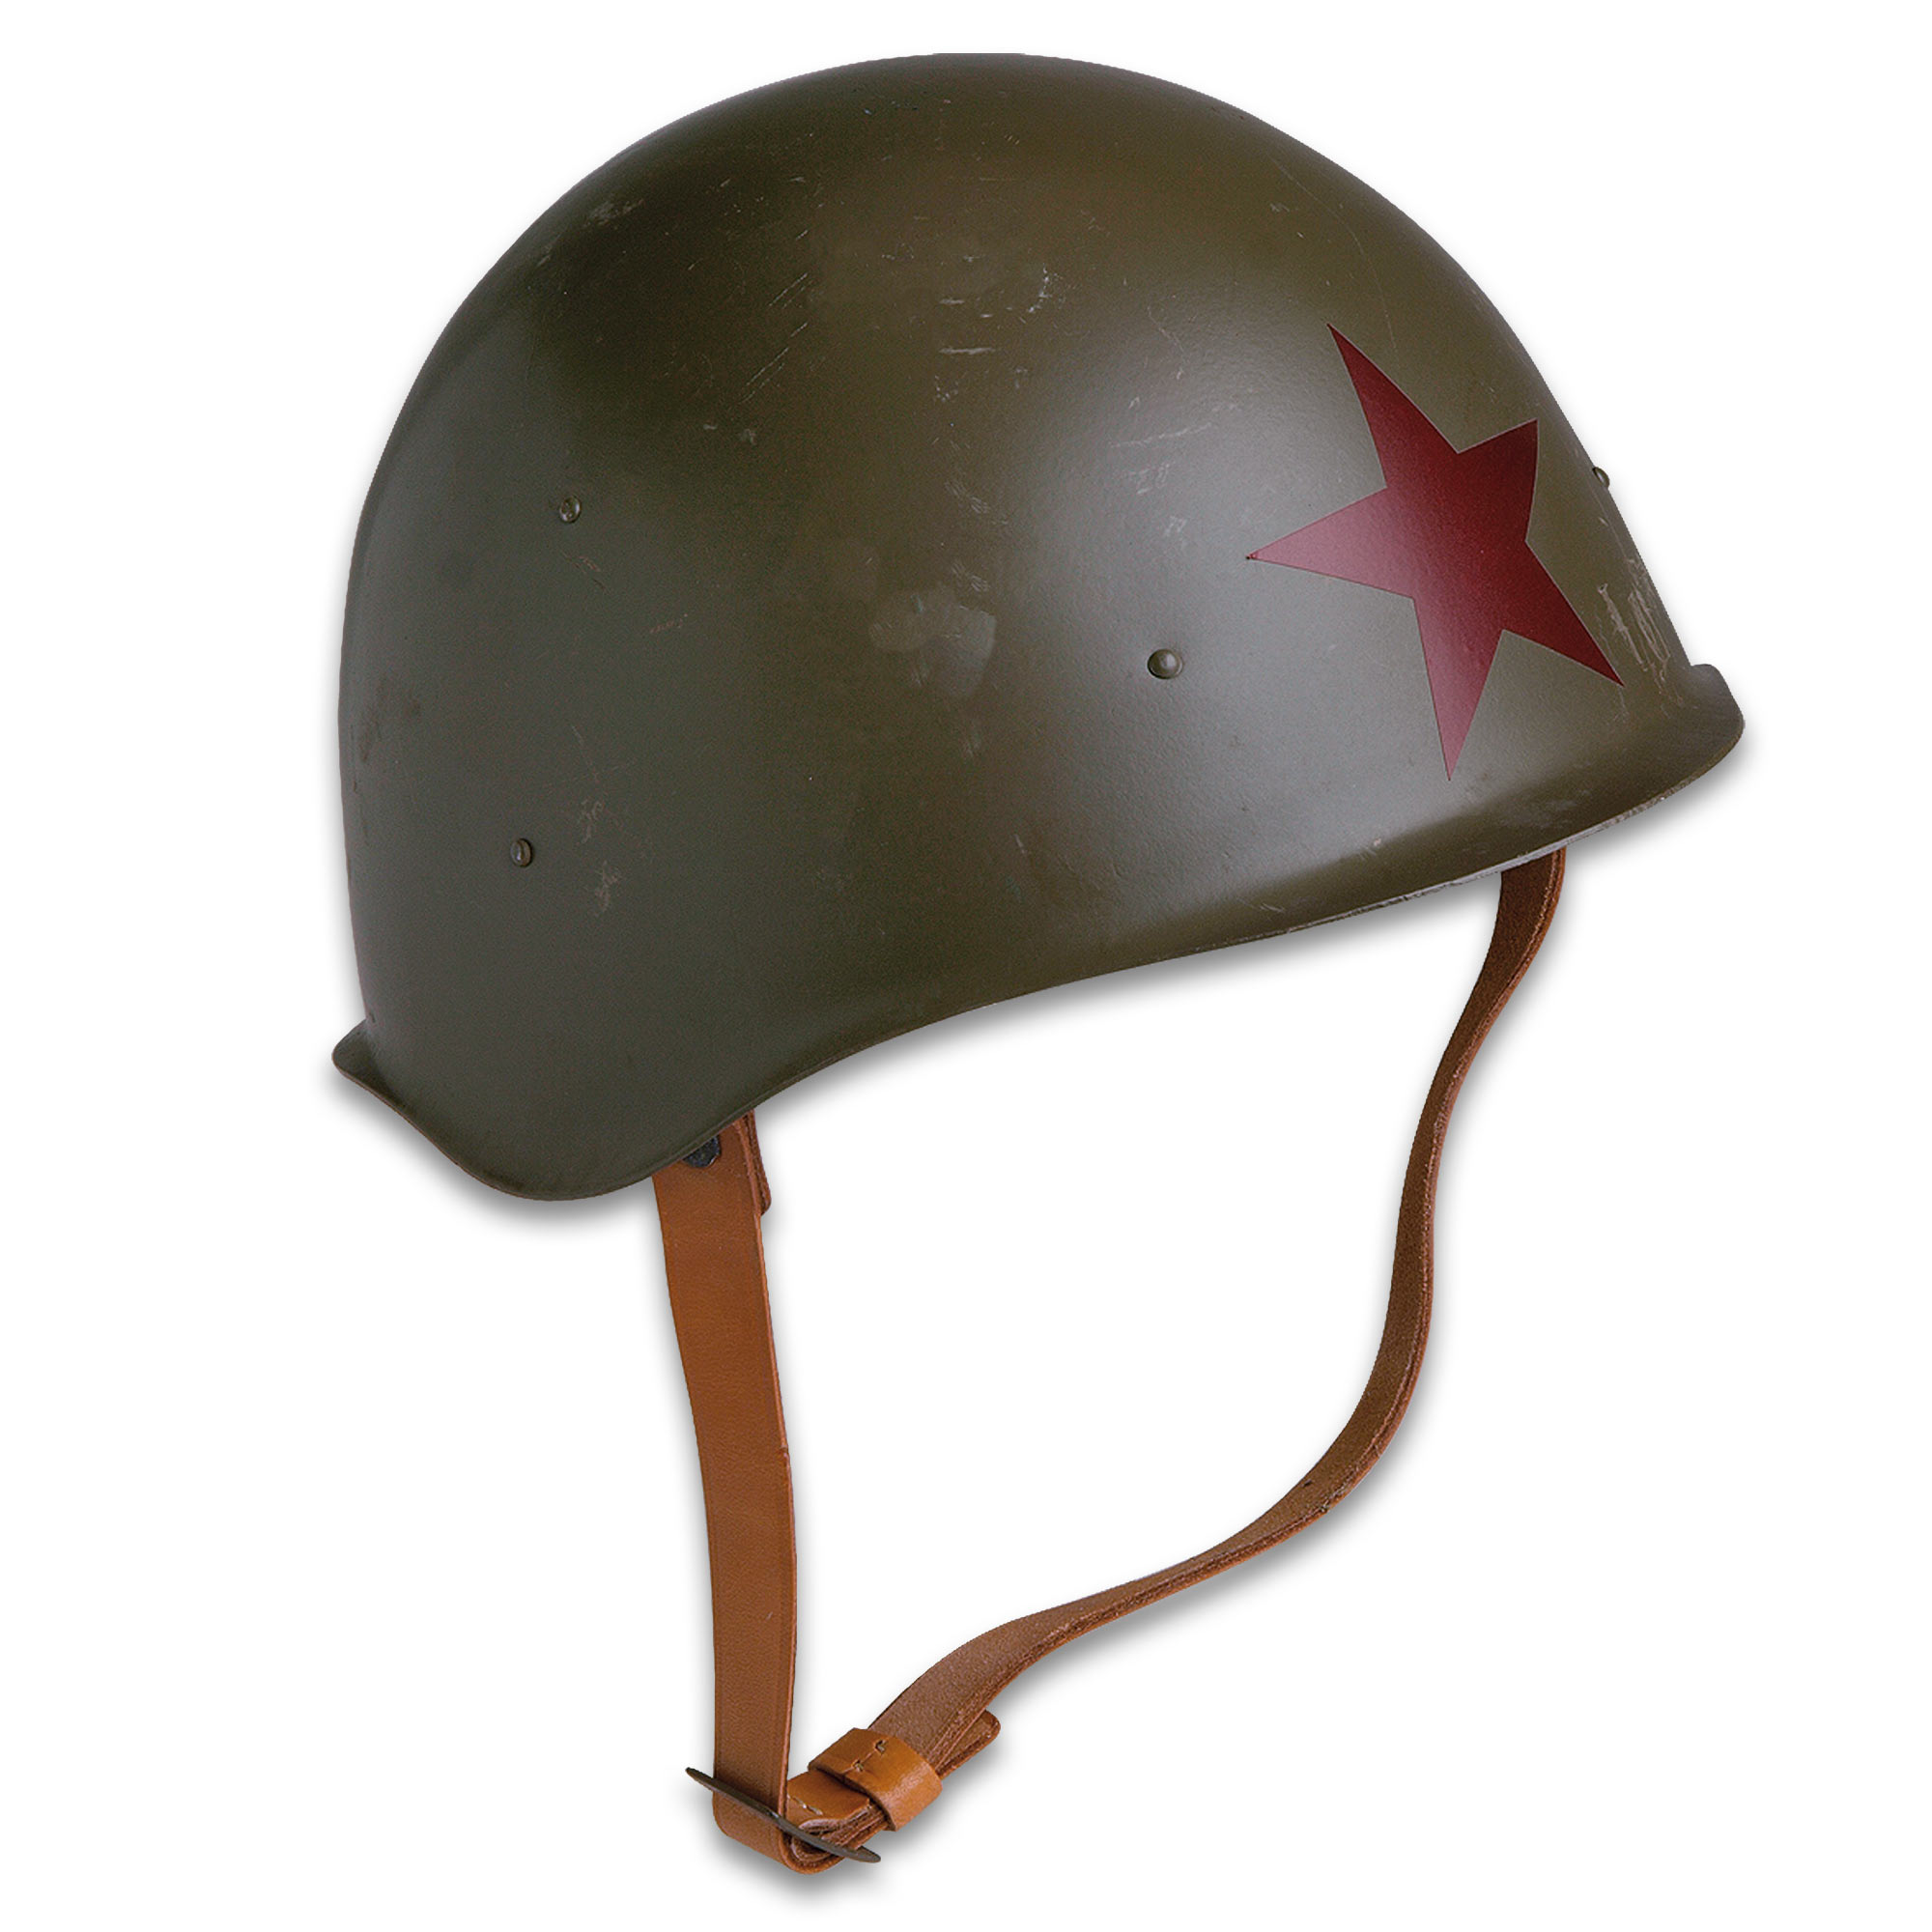 Military Surplus Red Army M52 Helmet Reproduction - World War II